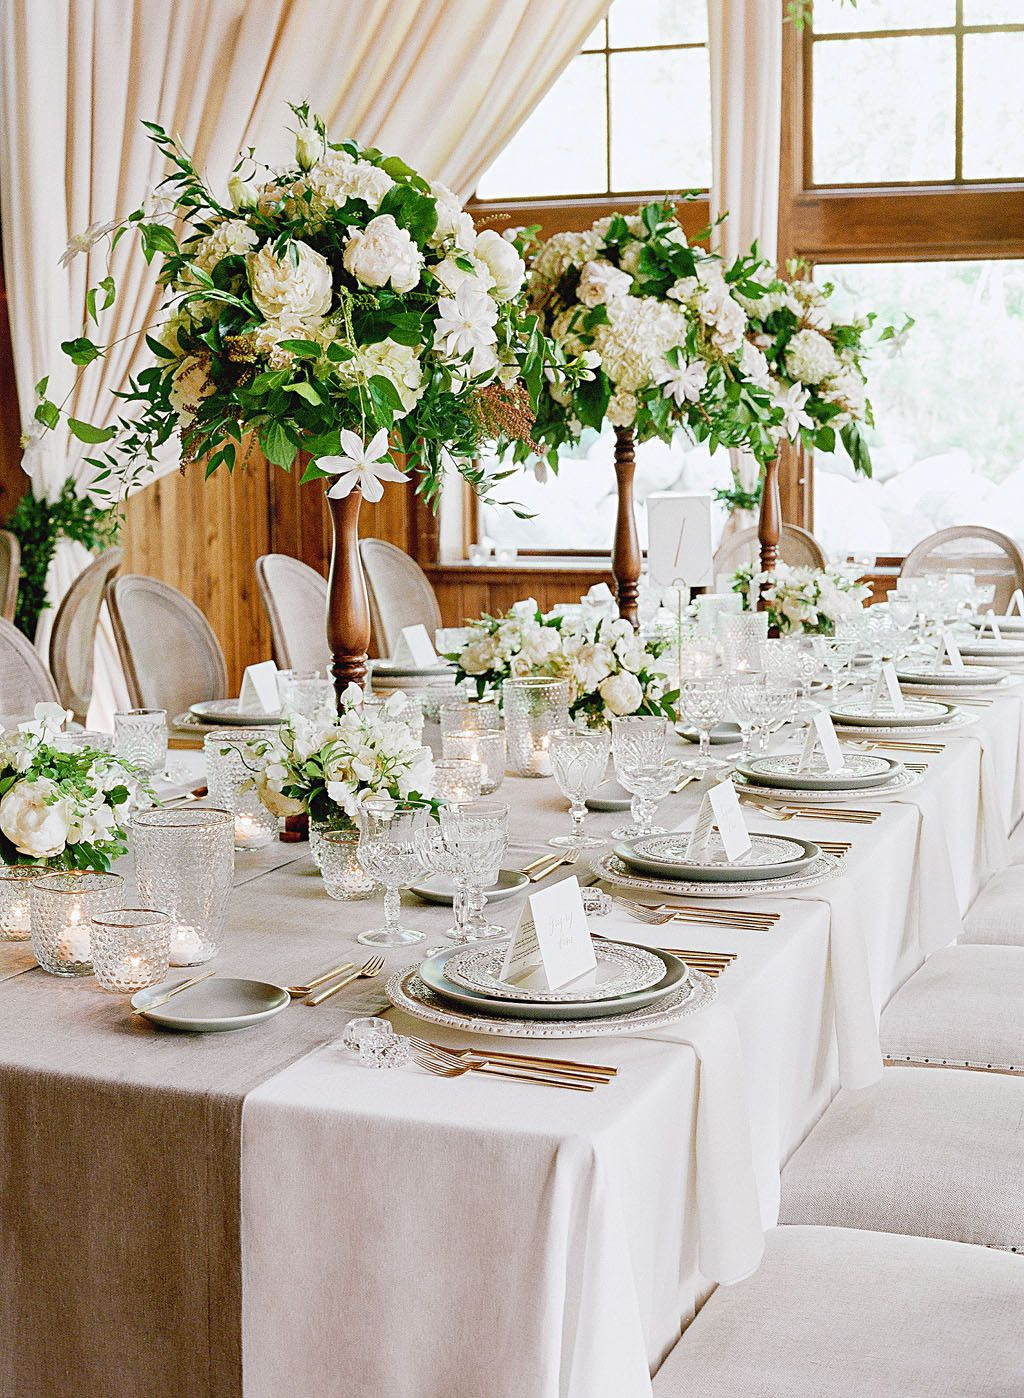 tall vases for wedding reception centerpieces of 79 white wedding centerpieces blairs bridal shower ideas with custom vases and tall white floral arrangements offered up an extra dose of elegance to this couples reception dacor bare root flora created equally